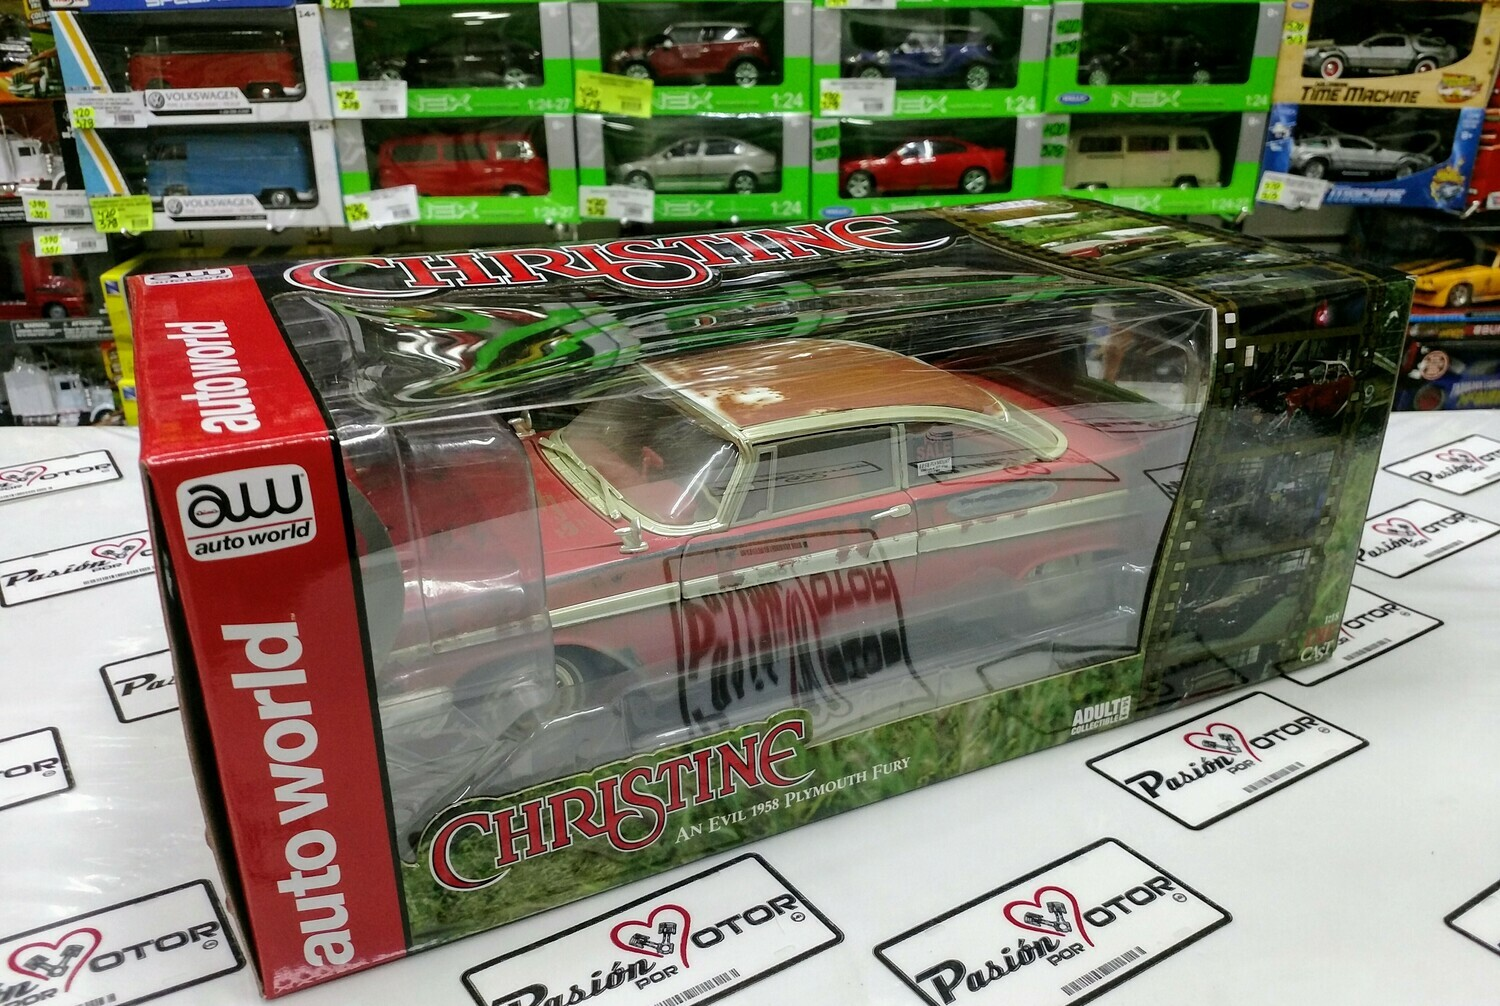 1:18 Plymouth Fury 1958 Christine An Evil Auto World Stephen King Jonkee